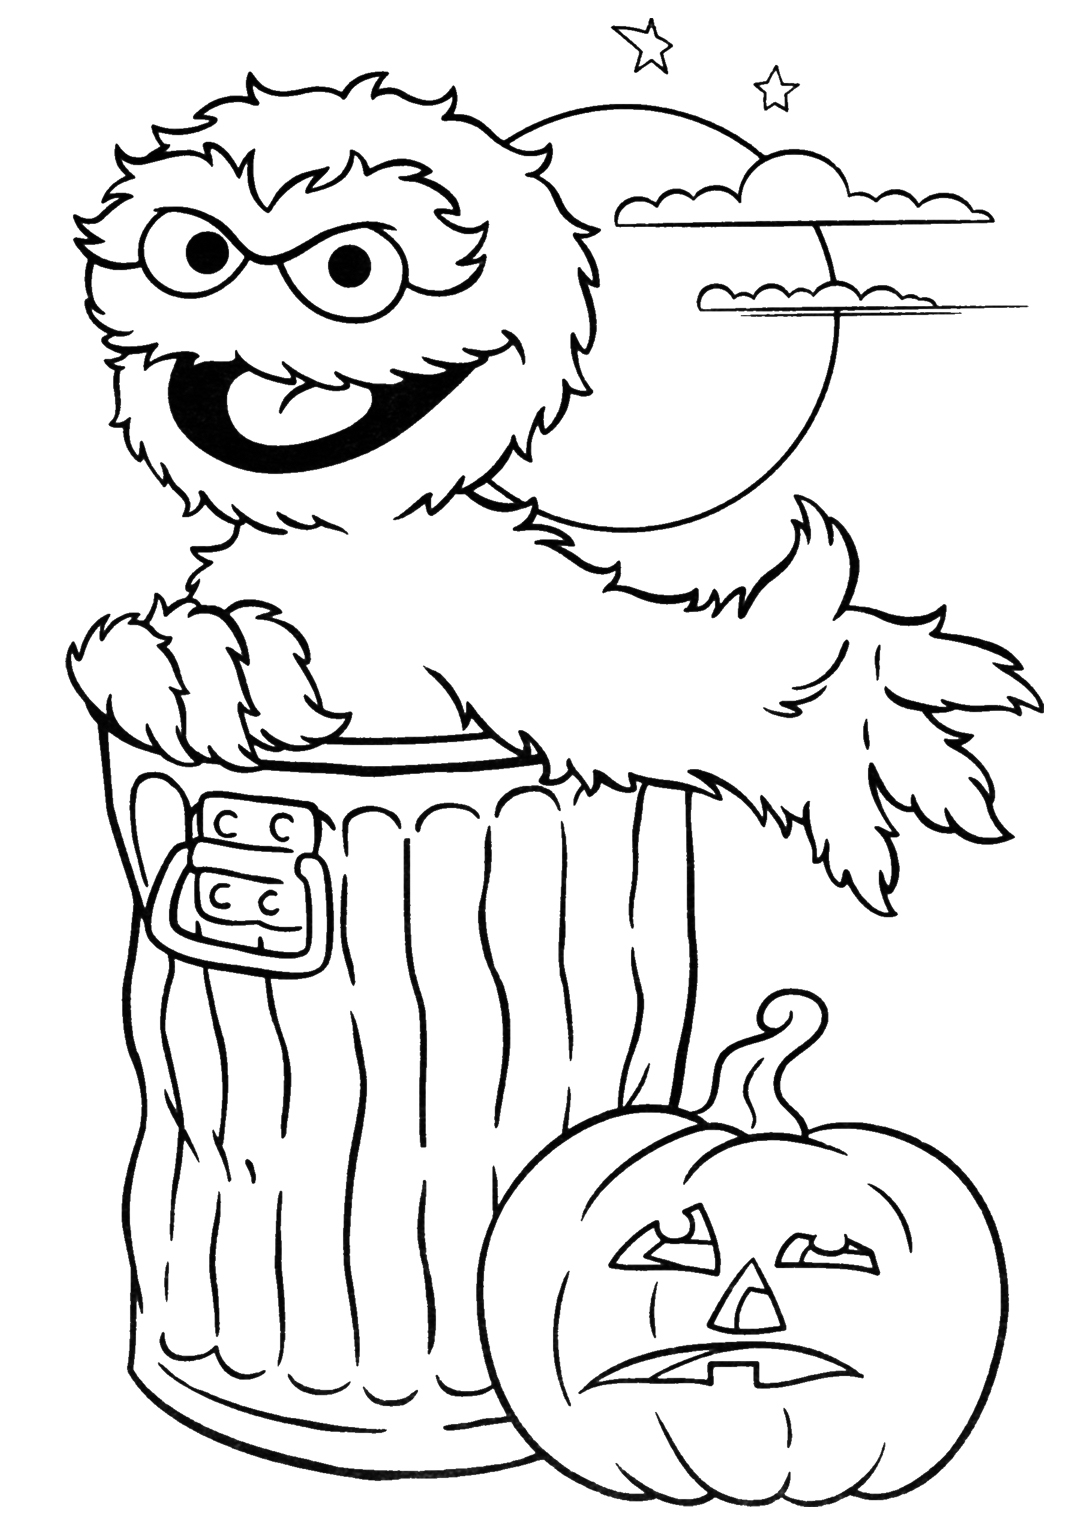 895x1268 sesame street oscar the grouch coloring page 1069x1532 sesame street